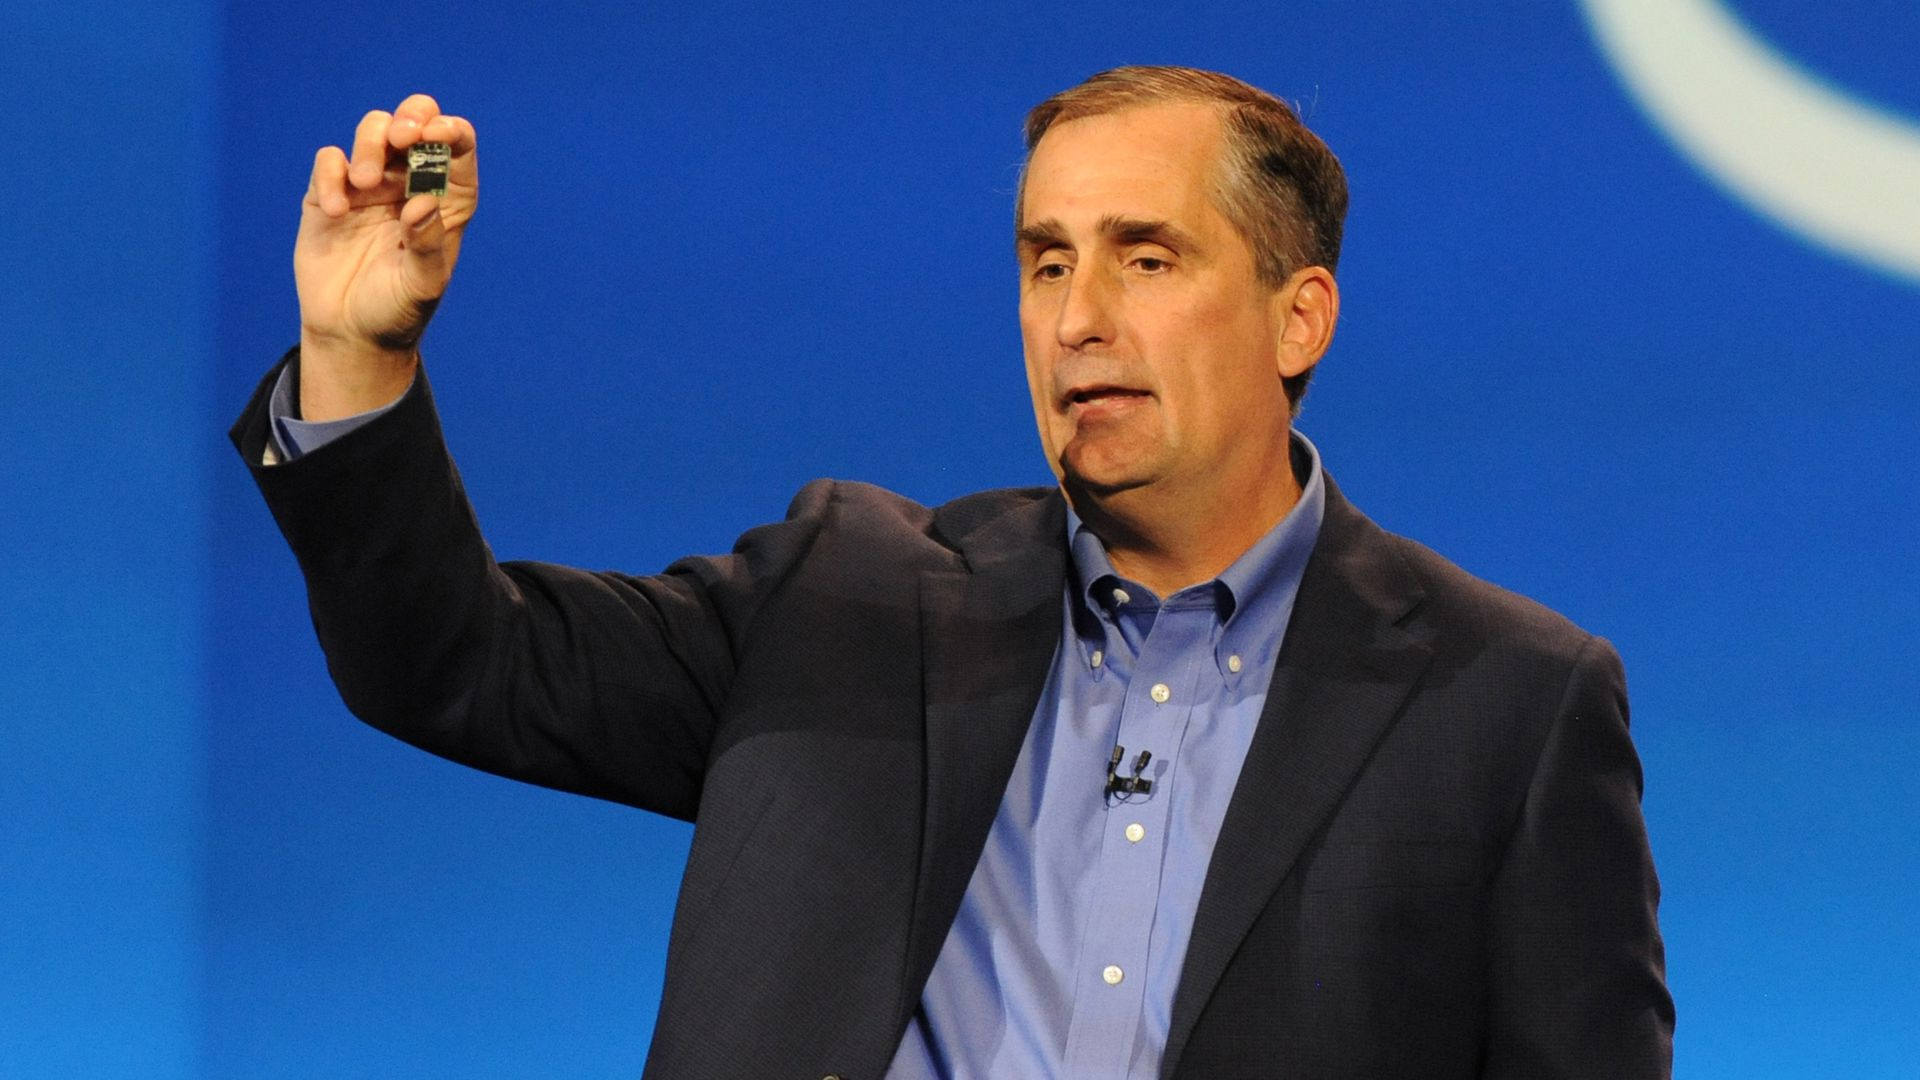 Intel CEO Brian Krzanich, speaking at CES 2014.